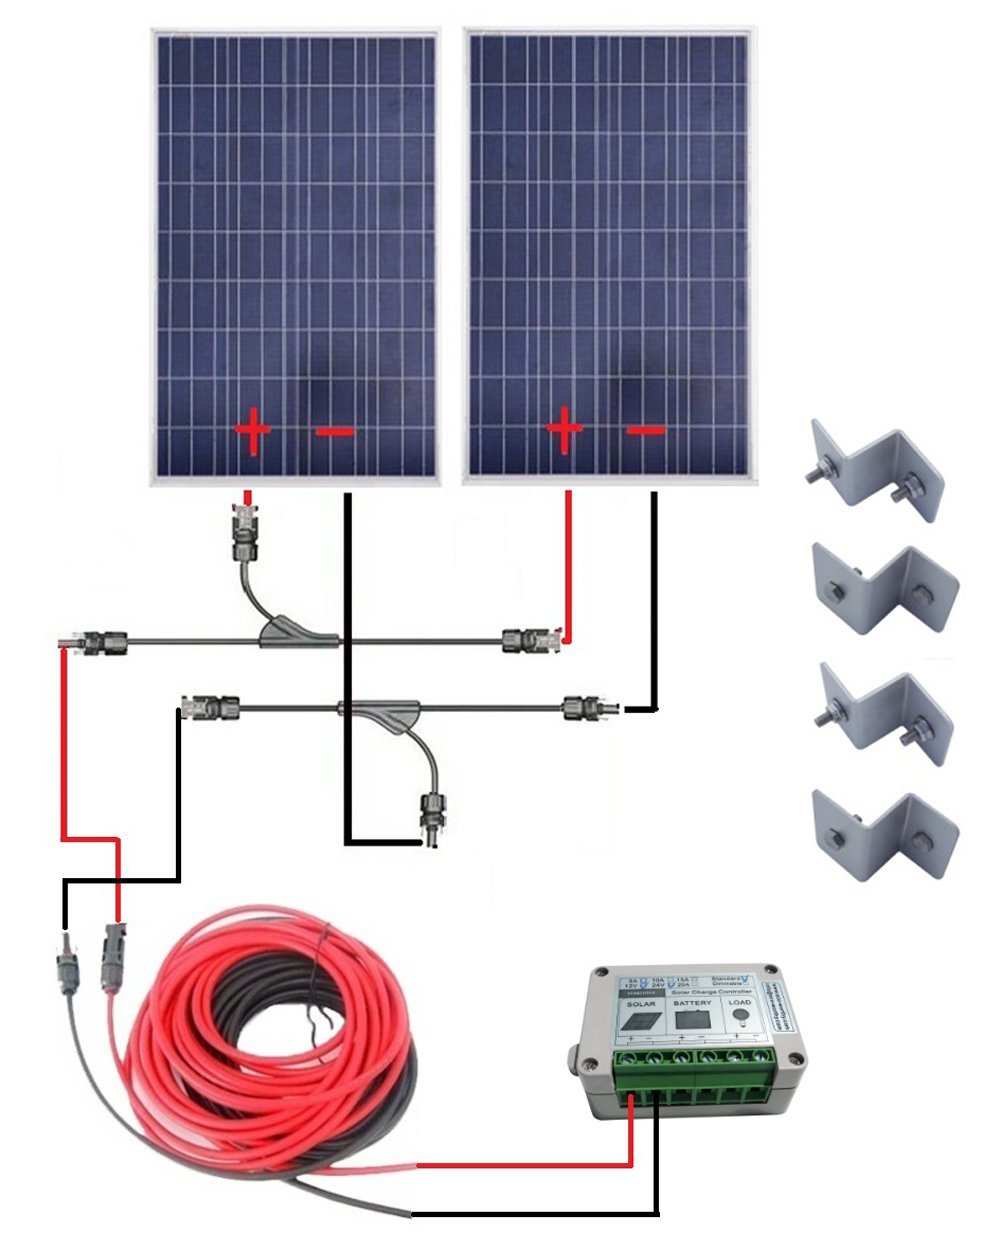 DE stock, 200w solar system for home no tax, COMPLETE KIT 200W Solar Panel cells off grid system, * new 7pcs spiral hand thread tap screw spiral point thread metric plug drill bits m3 m4 m5 m6 m8 m10 m12 hand tools